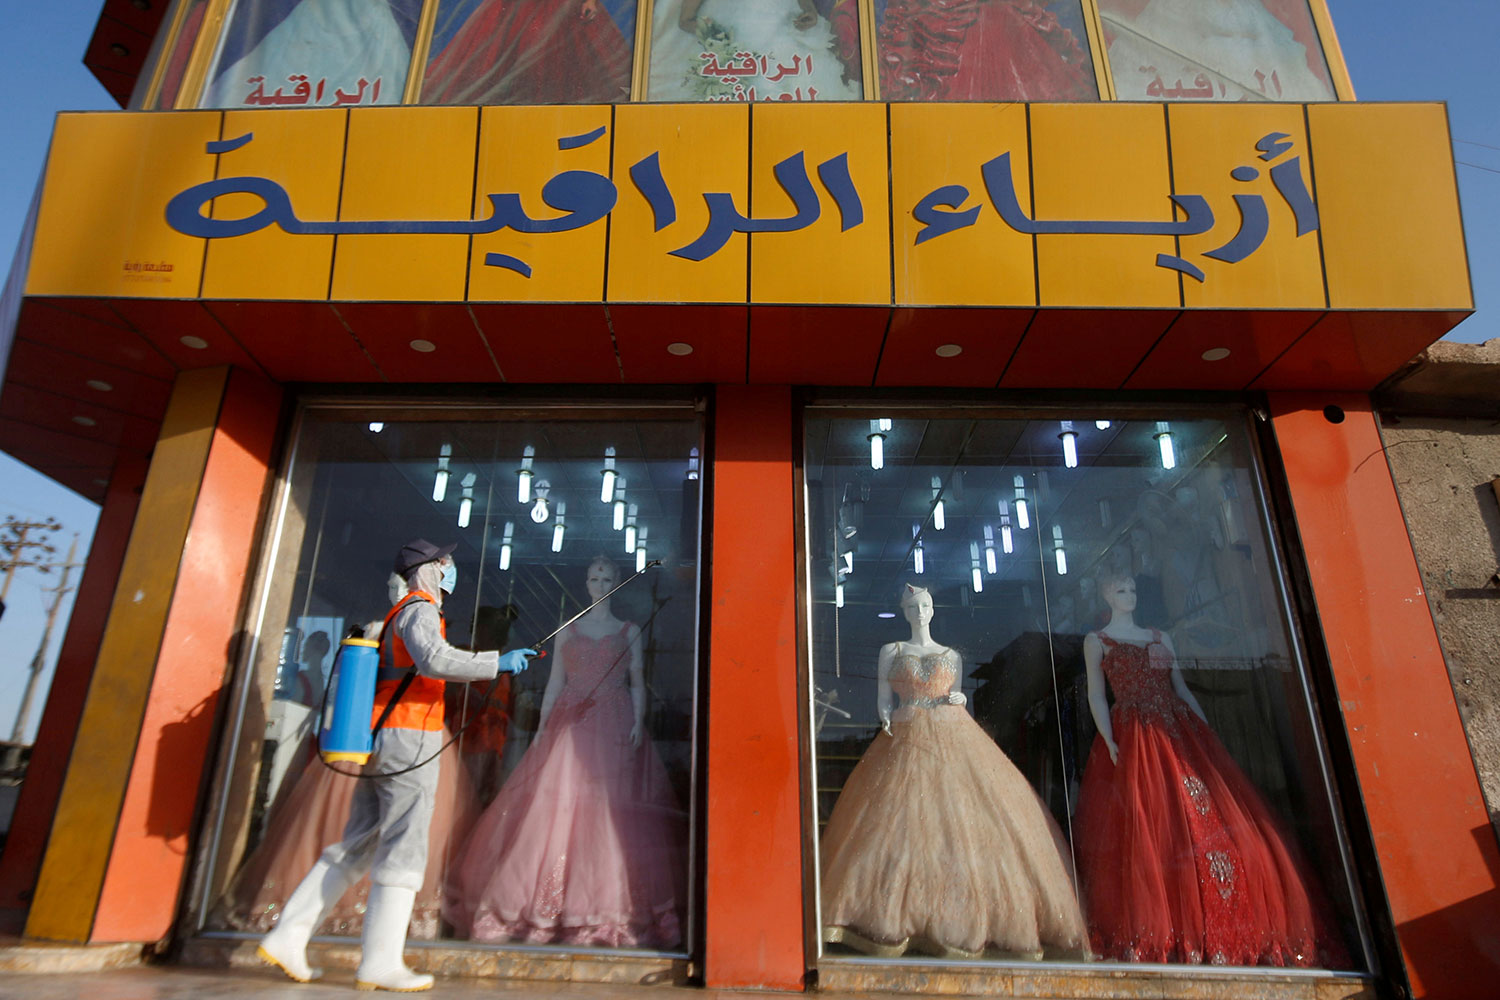 A worker in protective suit sprays disinfectants in front of a dress shop at popular market following the outbreak of the coronavirus in Basra, Iraq on March 10, 2020. This is an interesting photo showing a colorful dress shop with a worker walking by outside in protective gear spraying disinfectant. REUTERS/Essam al-Sudani